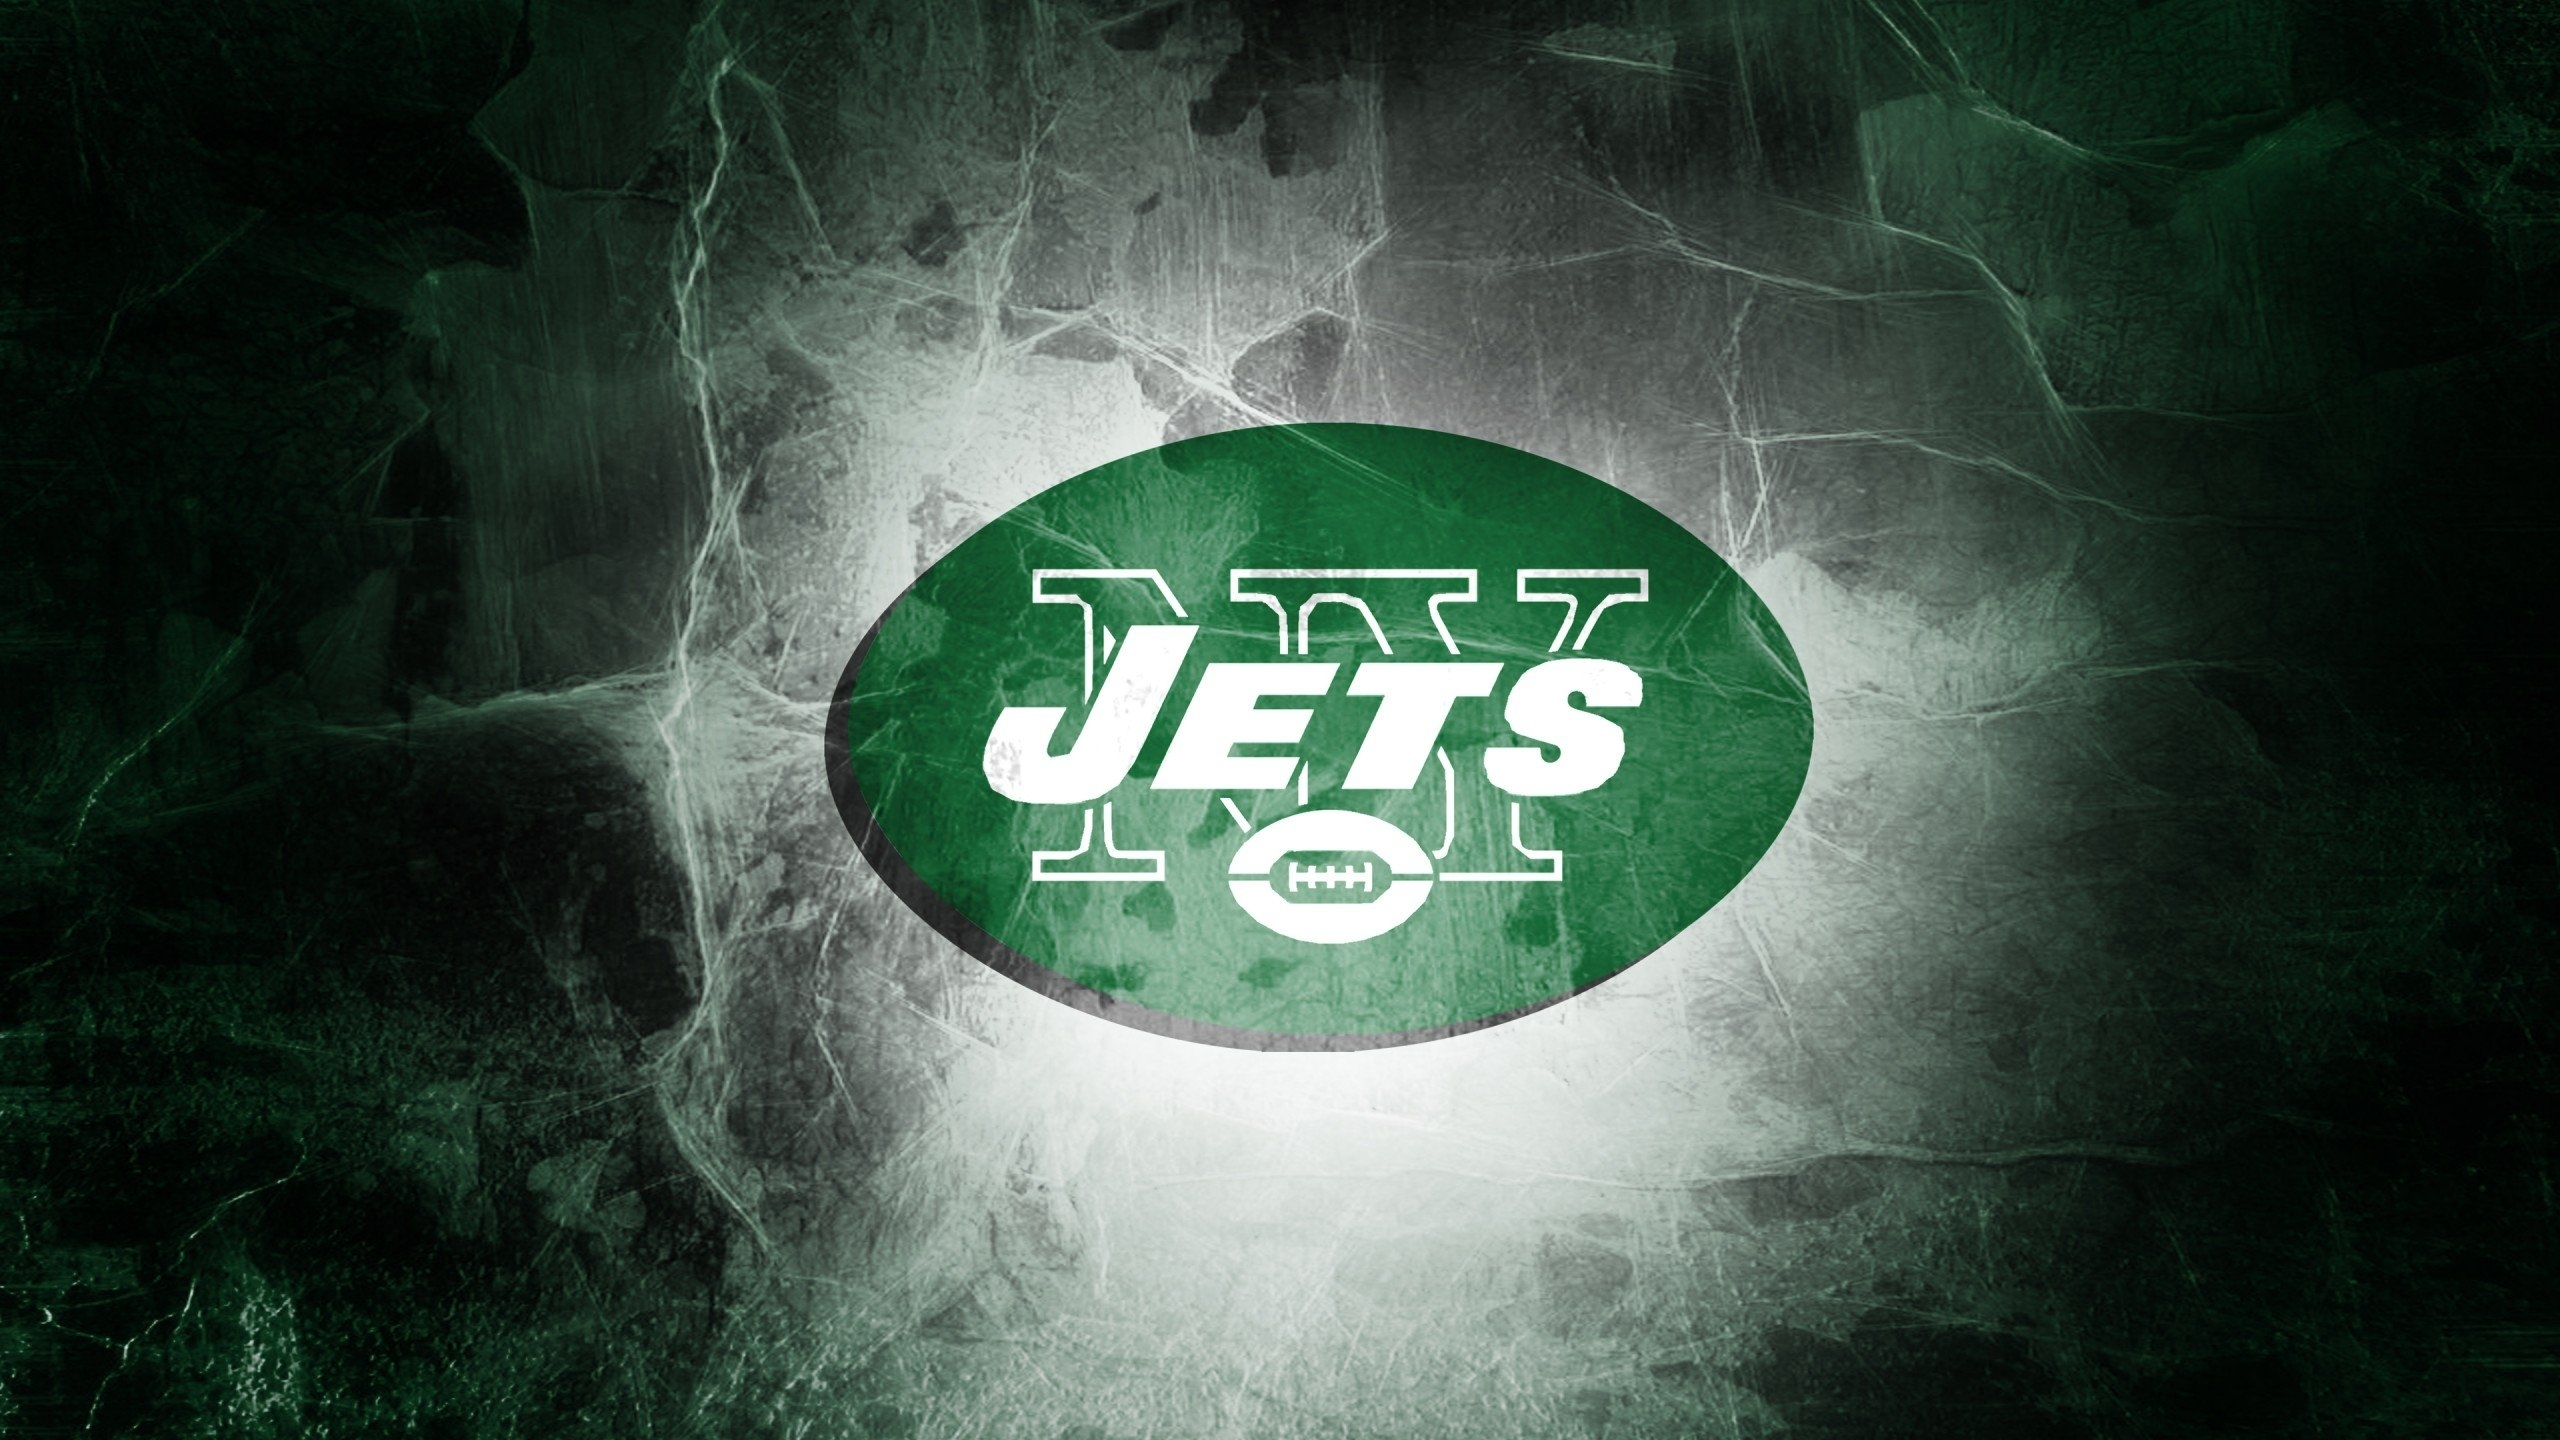 new york jets logo 833987 - walldevil